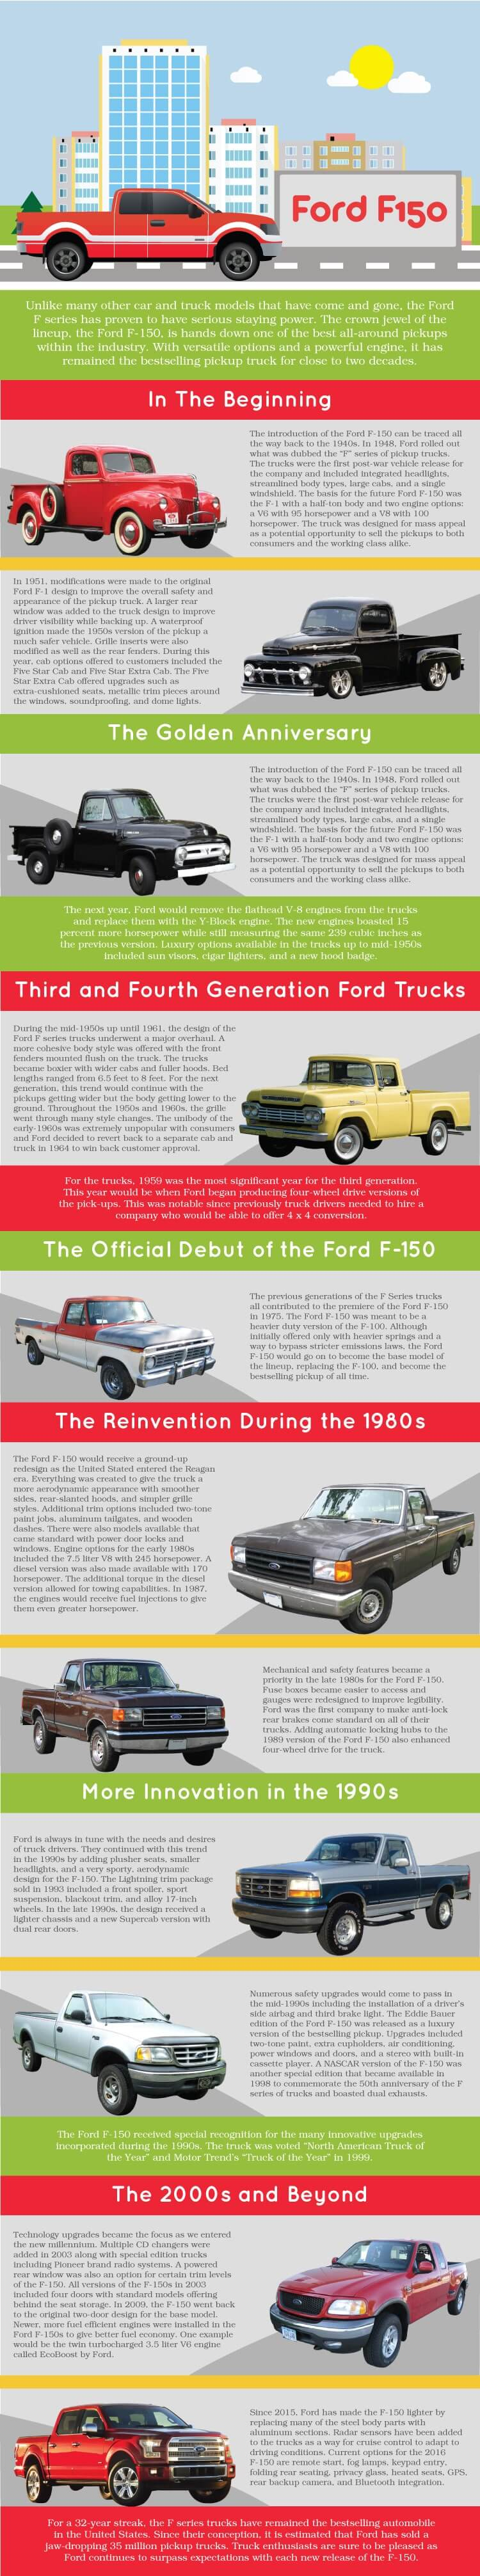 medium resolution of history of the ford f150